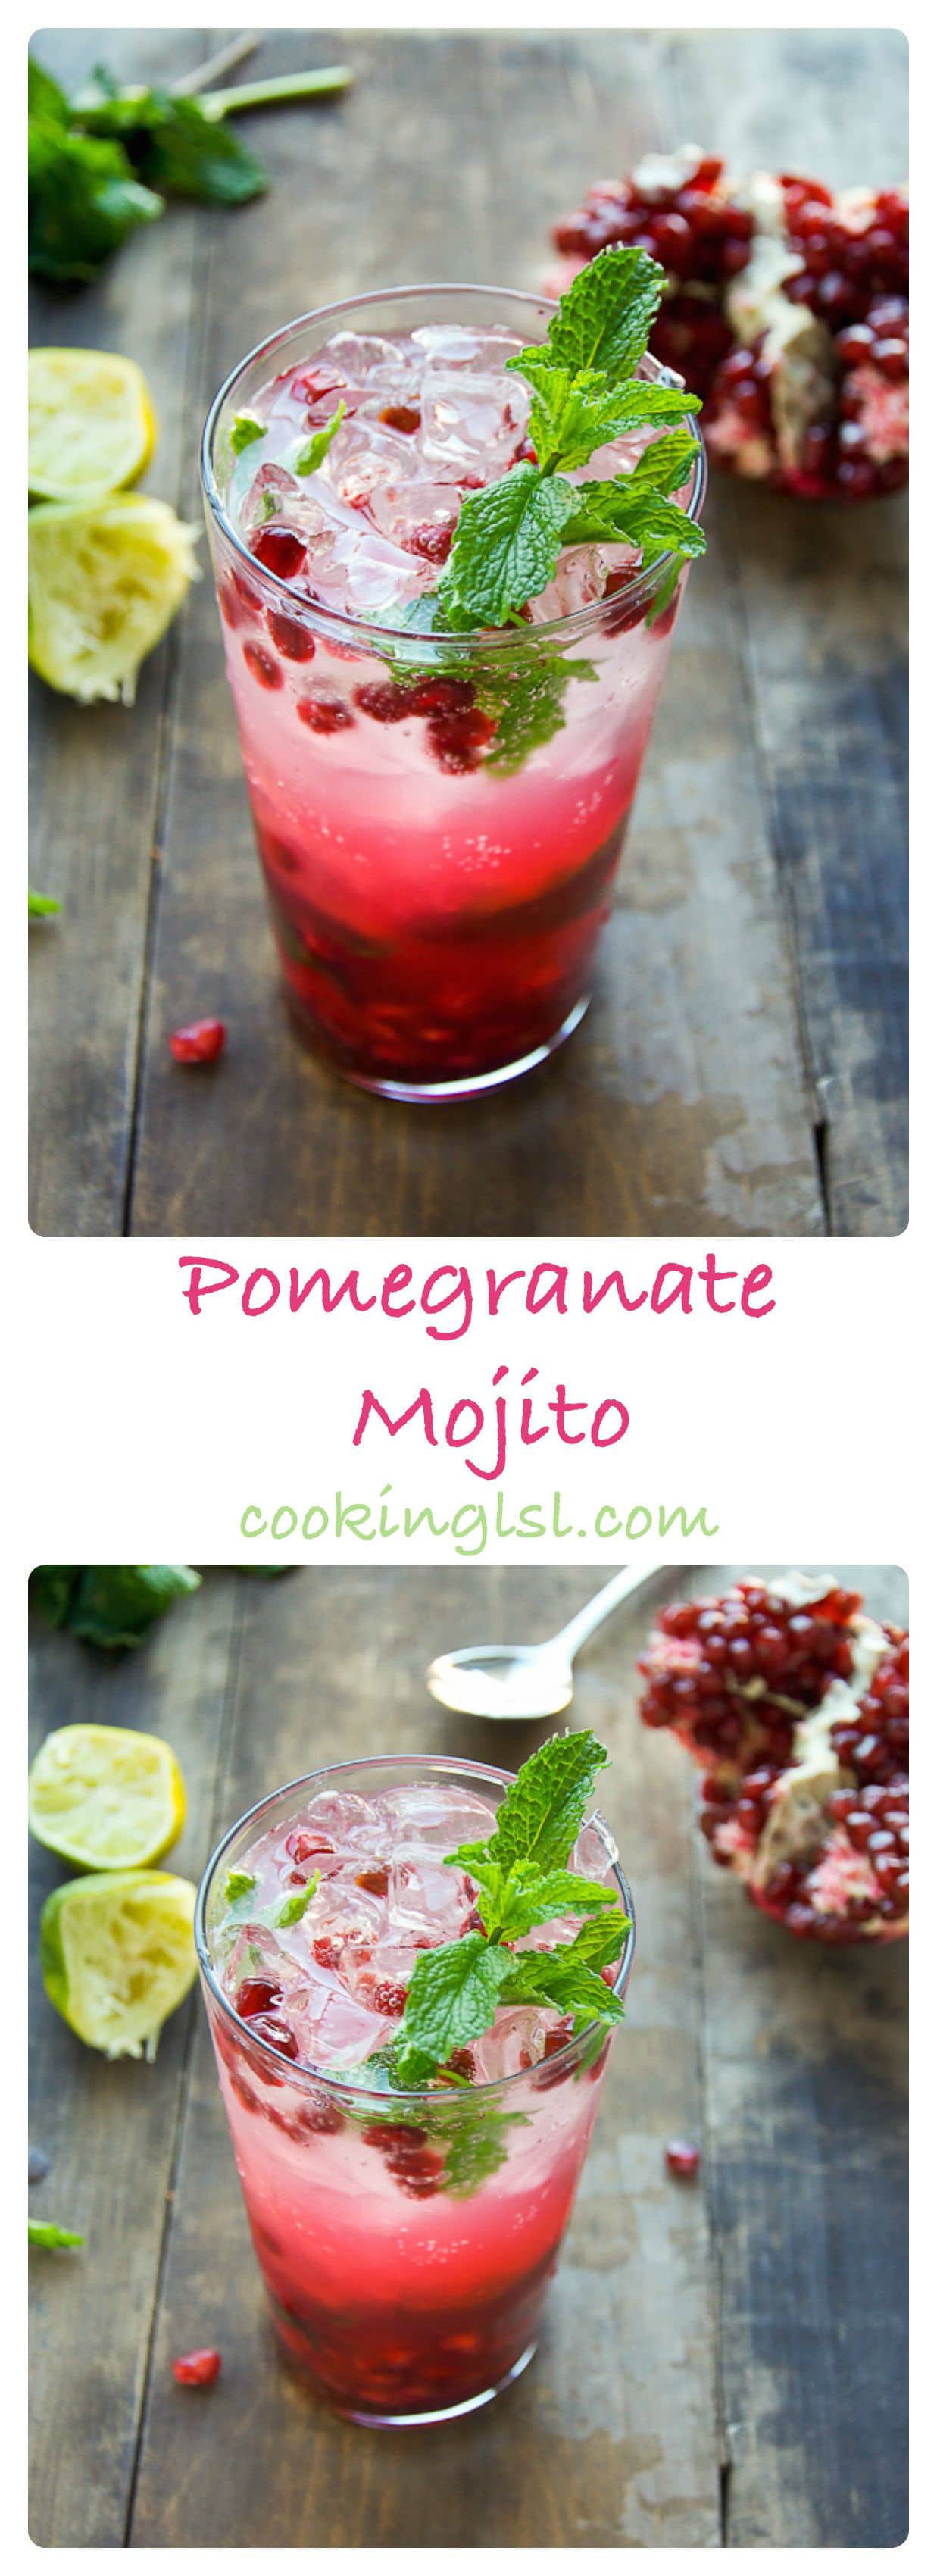 Simple and impressive Pomegranate Mojito Cocktail Antioxidants with fresh limes on the side